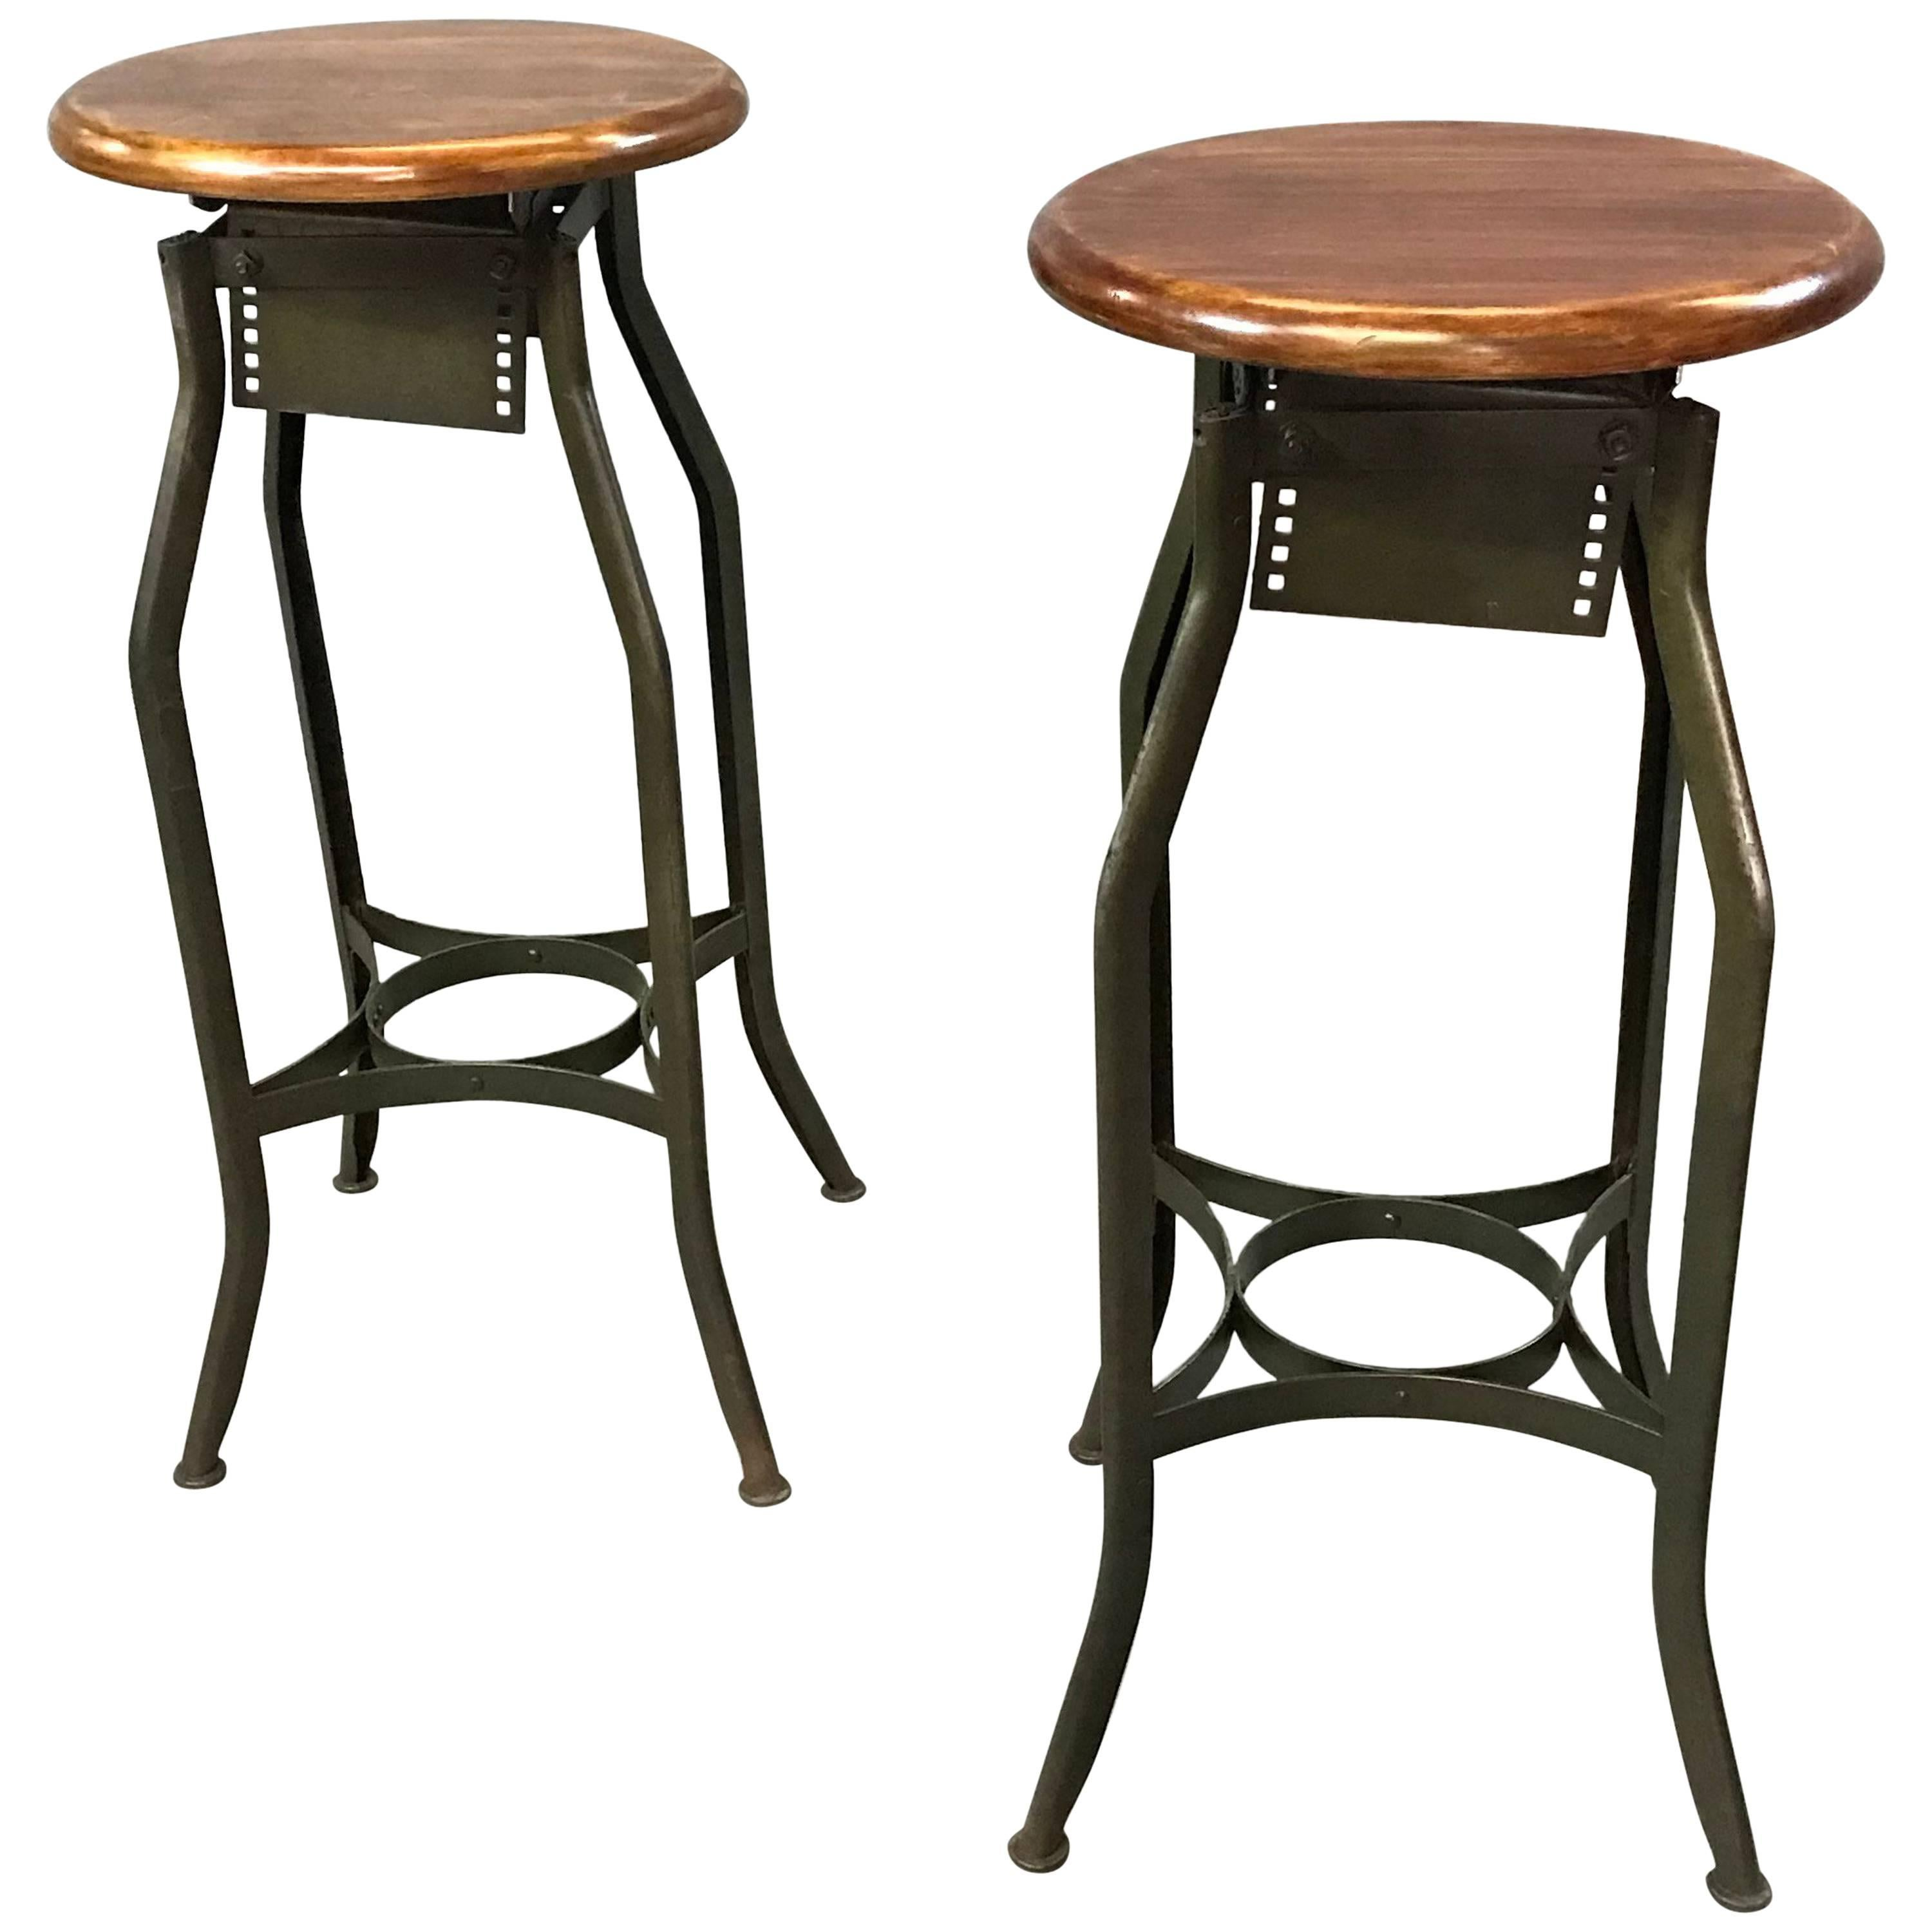 Pair of Industrial Height Adjustable Toledo Shop Stools